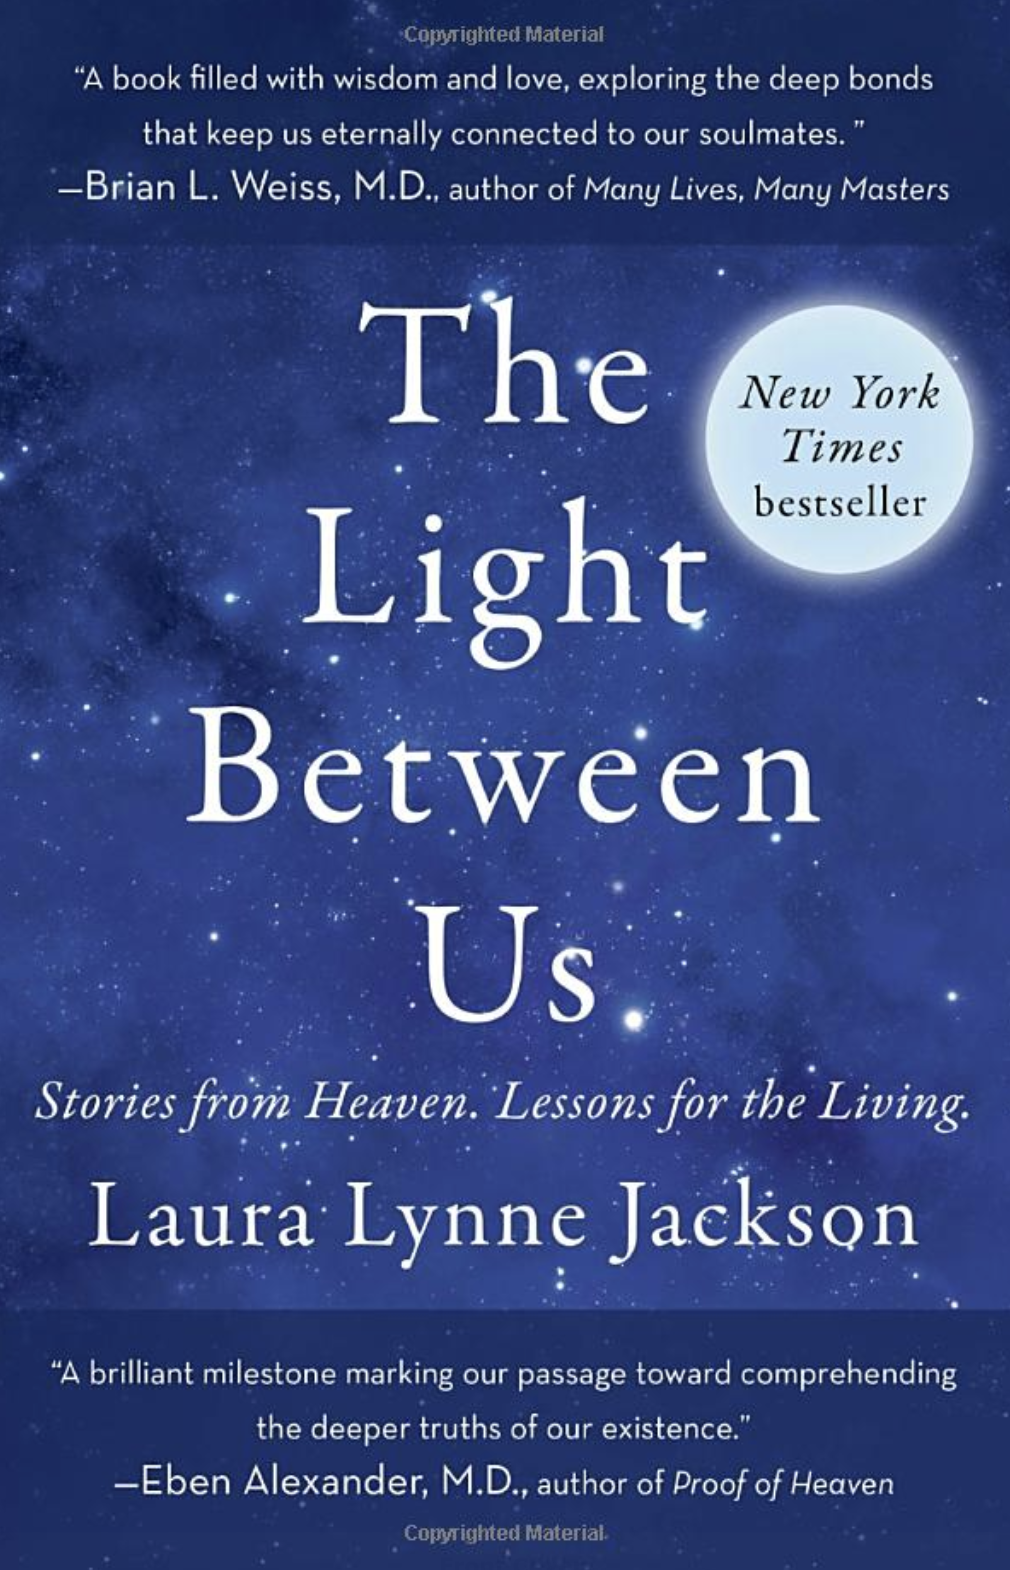 laura-lynn-jackson- the-light-between-us-book-elizabeth-irvine-truewellbeing- serendipity-earth-angels-messages-from-above-.png